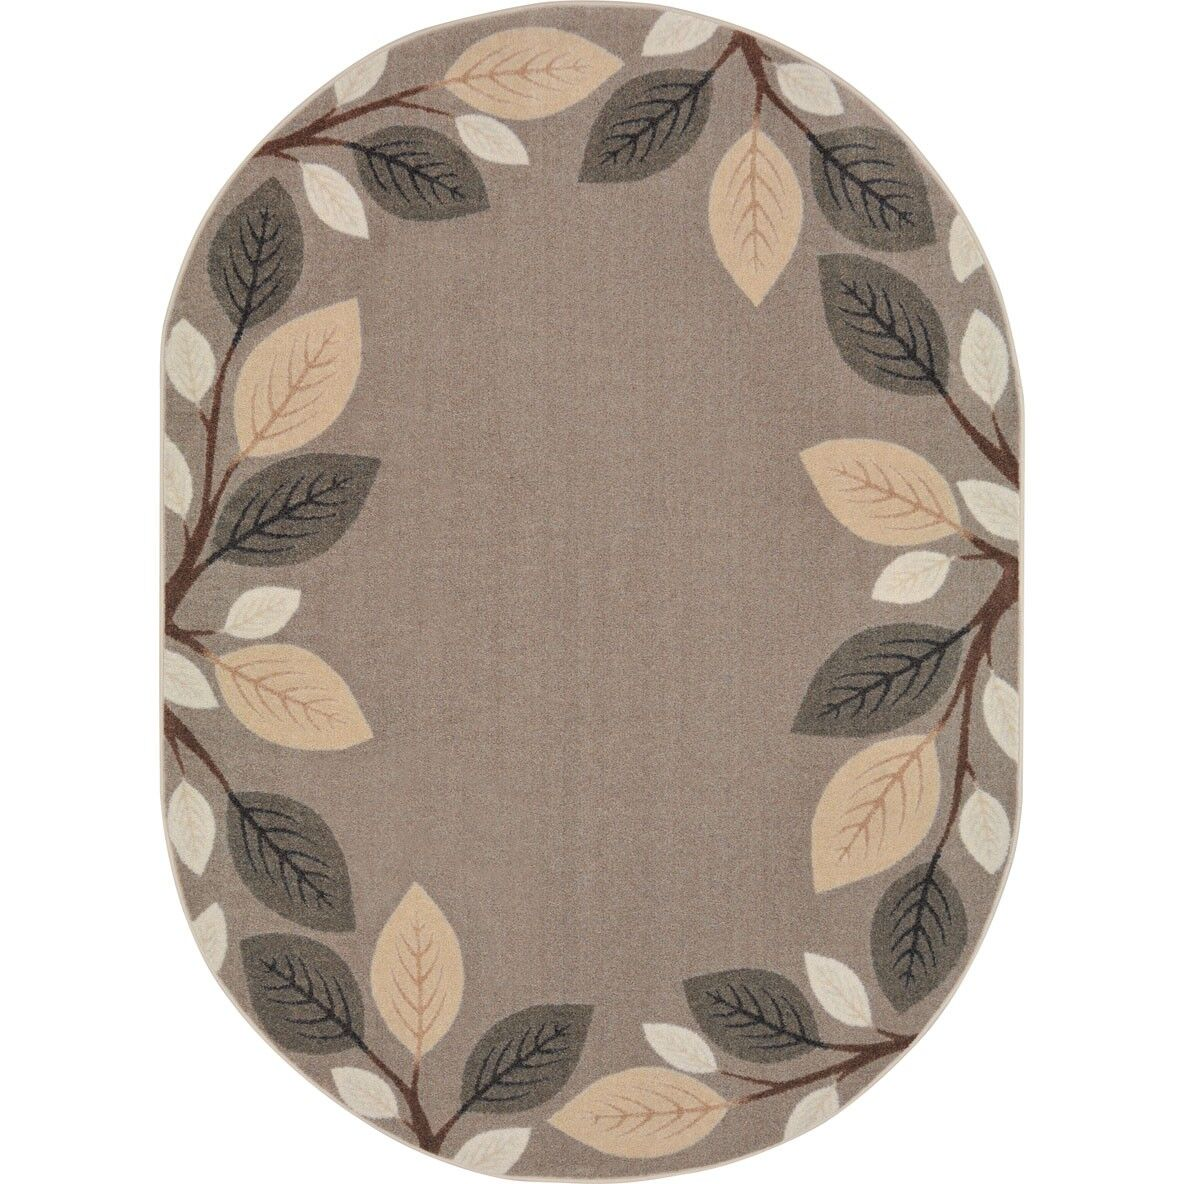 Allred Breezy Branches Brown Area Rug Rug Size: Oval 7'8